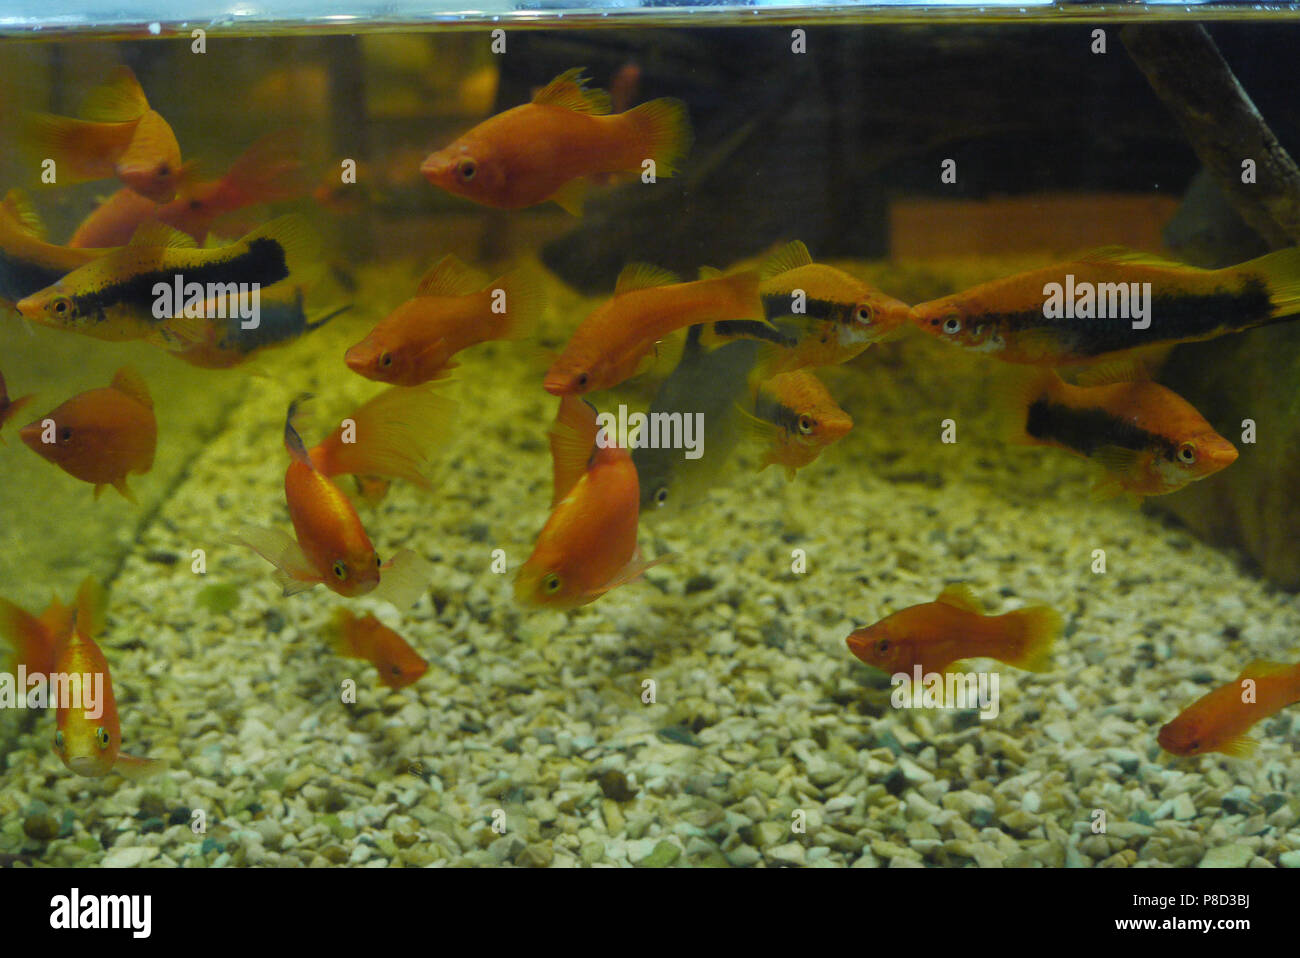 A Flock Of Colorful Beautiful Fish Of Orange Color And With Black